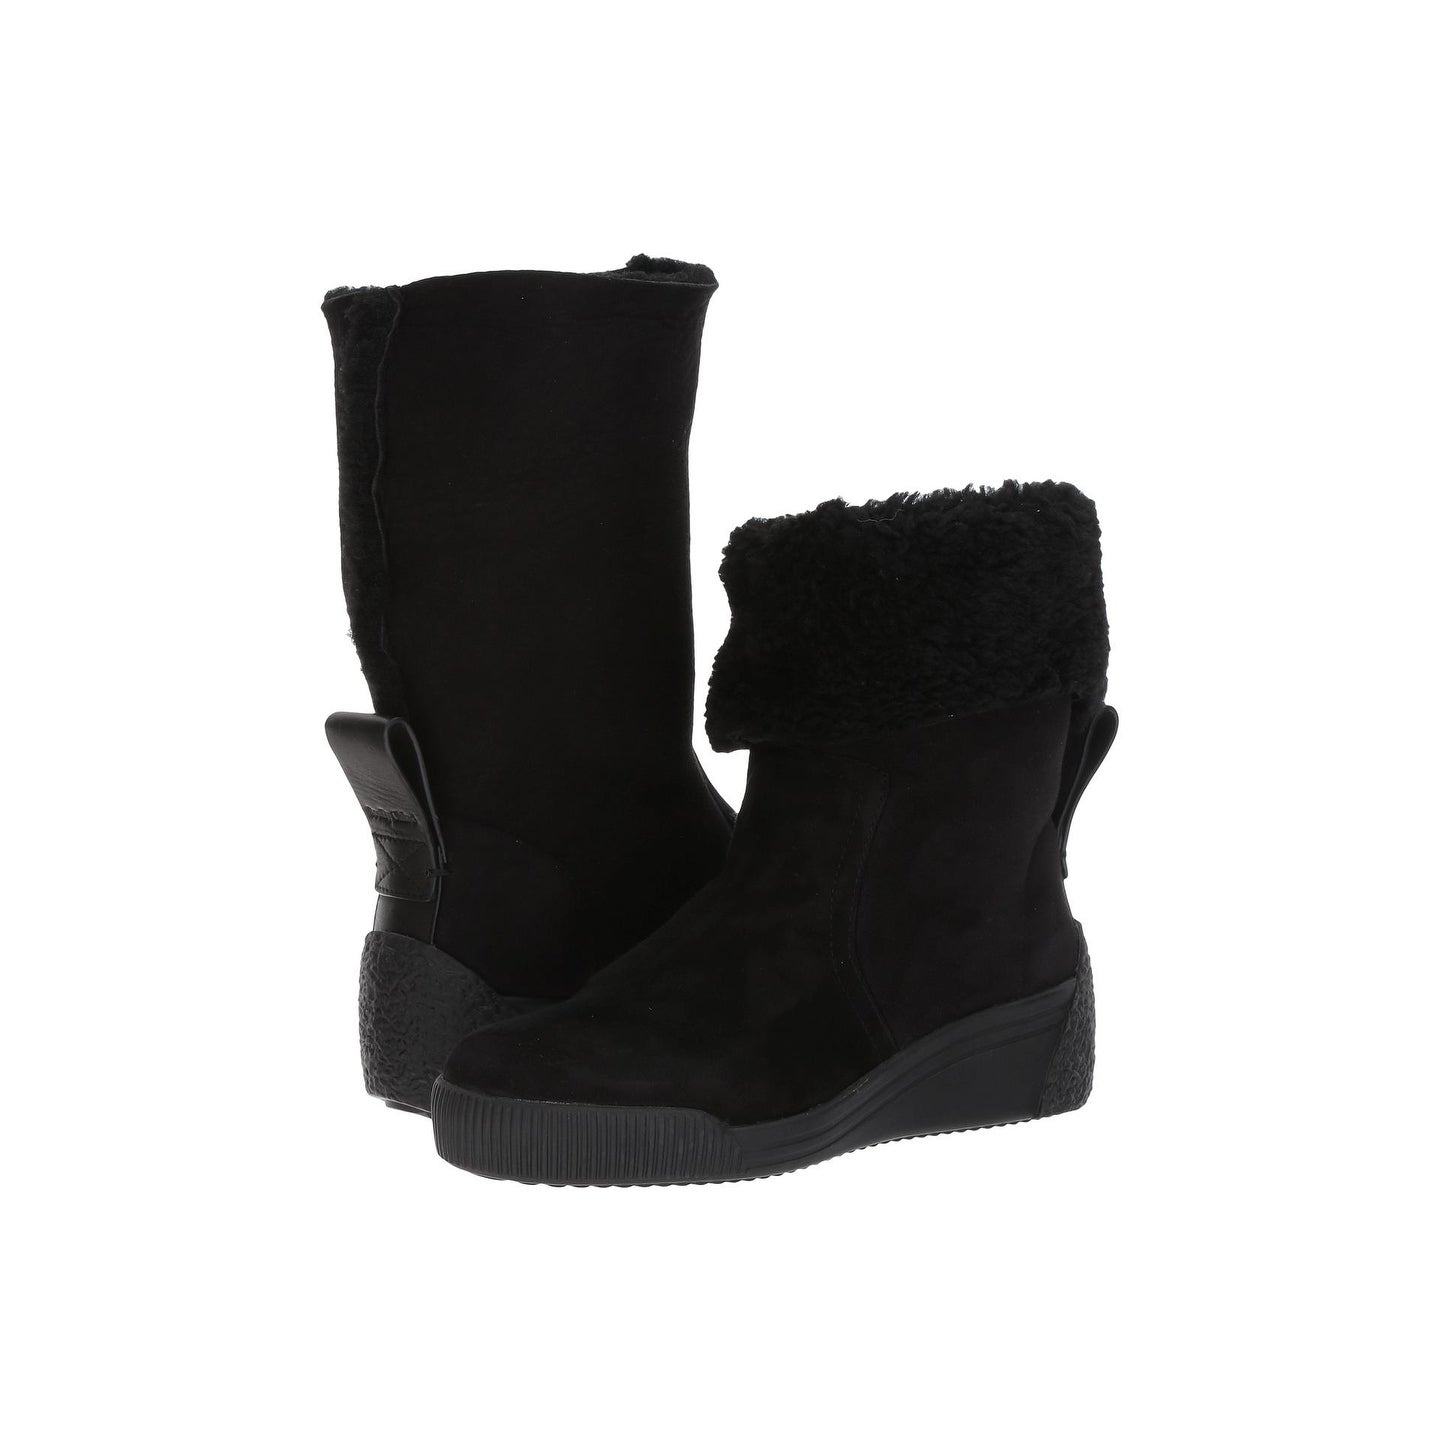 d3177c31 See by Chloé Womens SB29152 Sheep Skin Closed Toe Ankle Cold Weather Boots